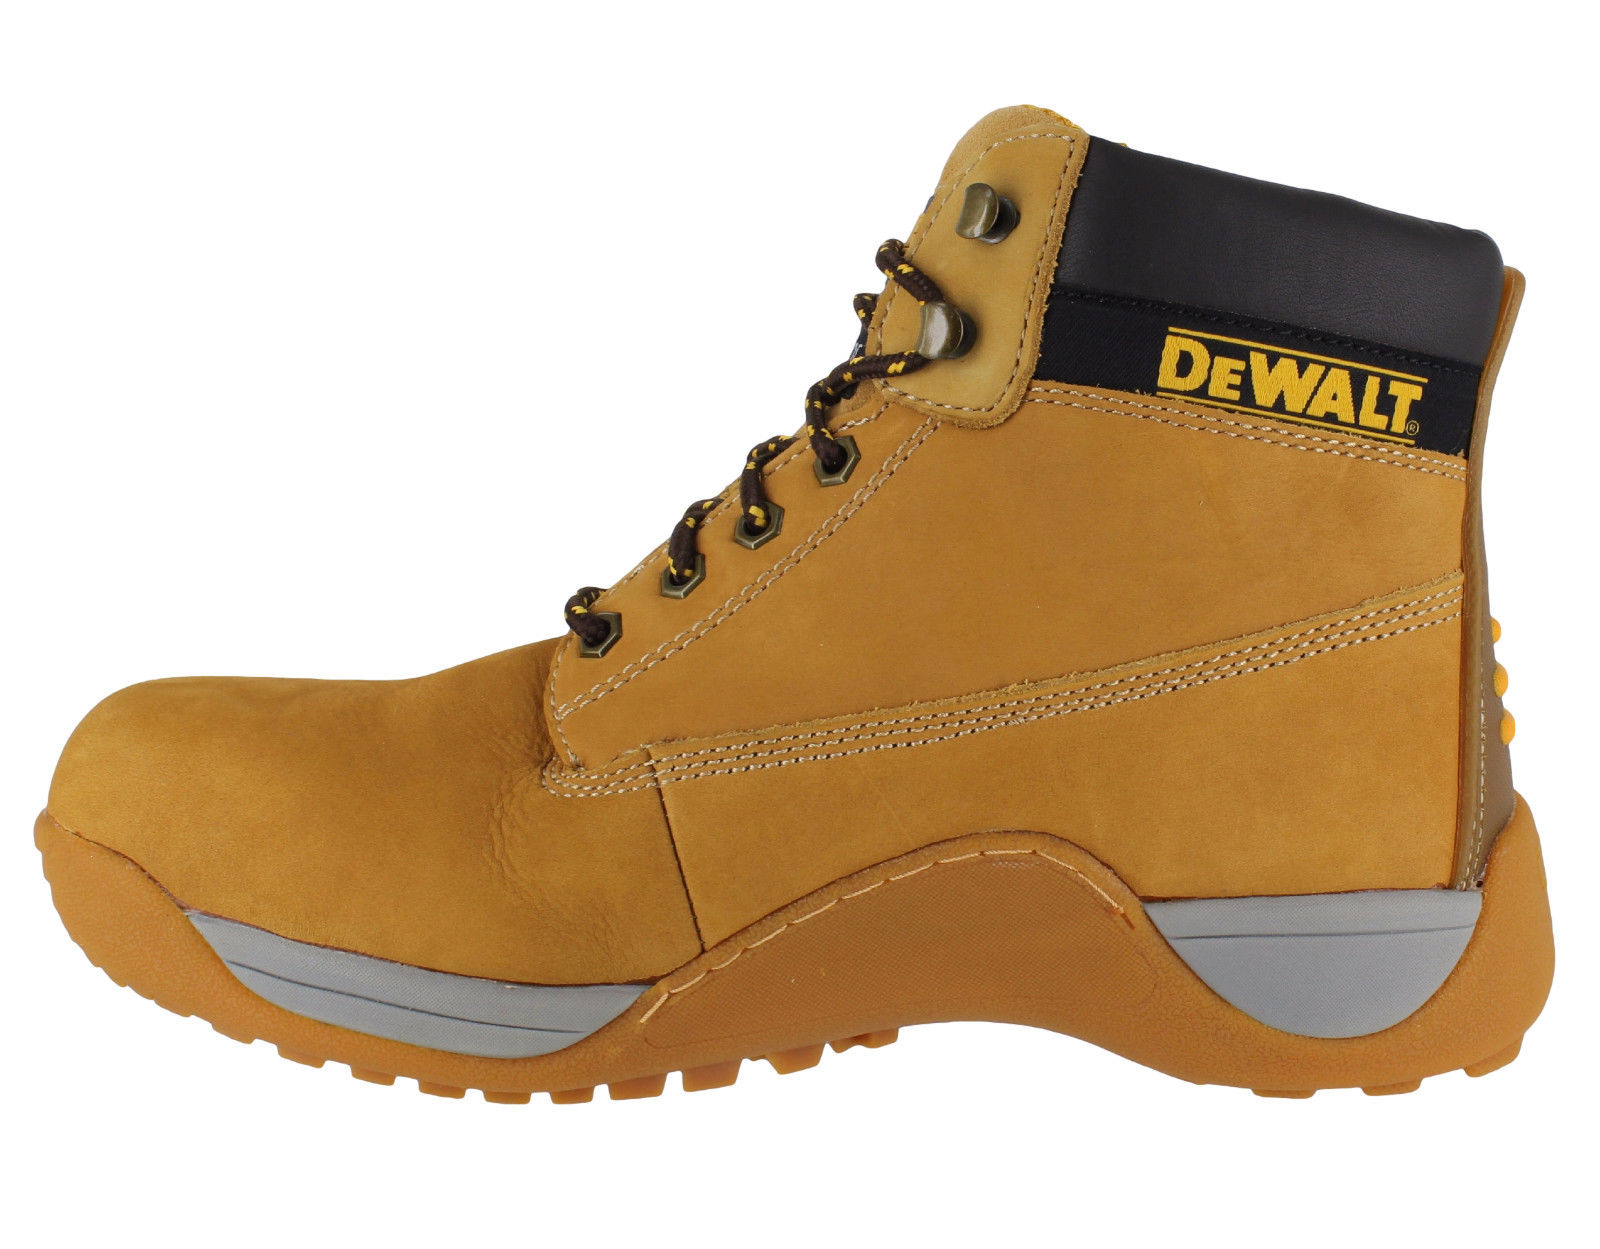 f838b9f3034 Details about Mens DeWalt Apprentice Leather SB Safety Steel Toe Lace Up  Boots Sizes 3 to 13